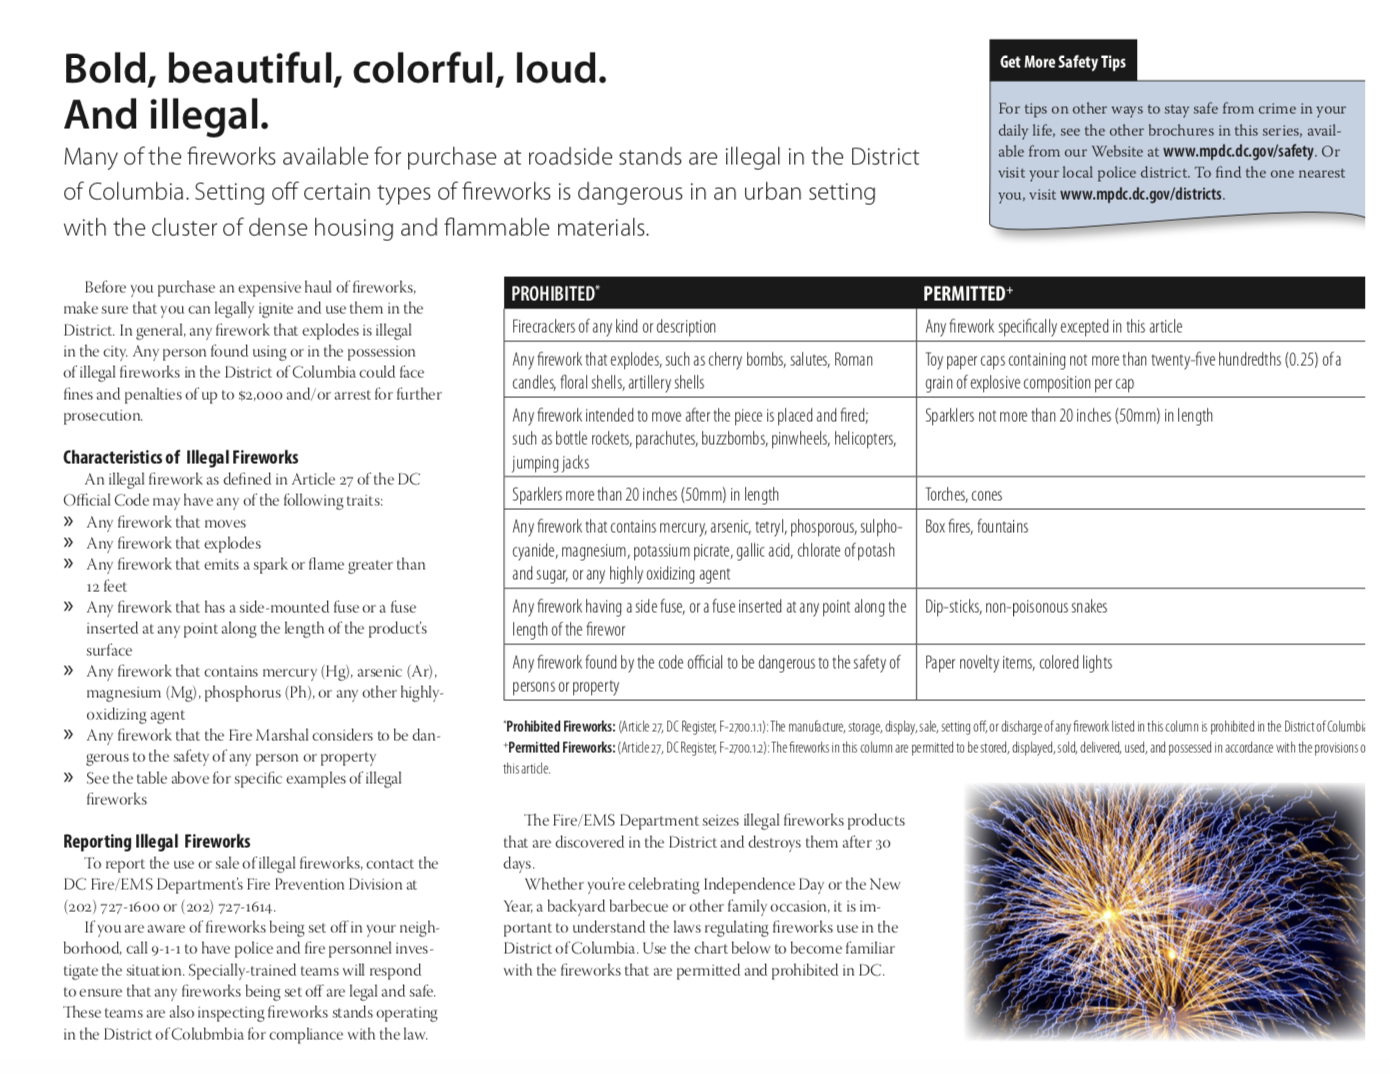 What you need to know about setting off fireworks in DC